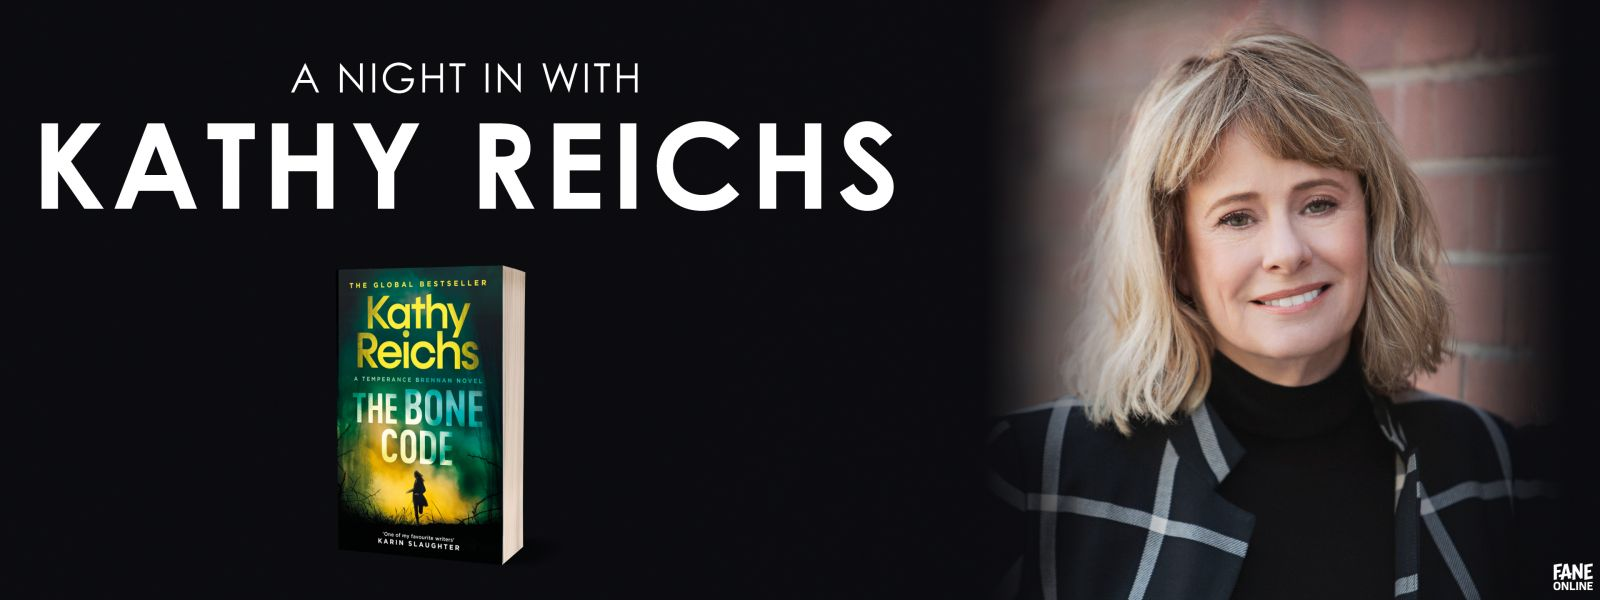 A Night In with Kathy Reichs